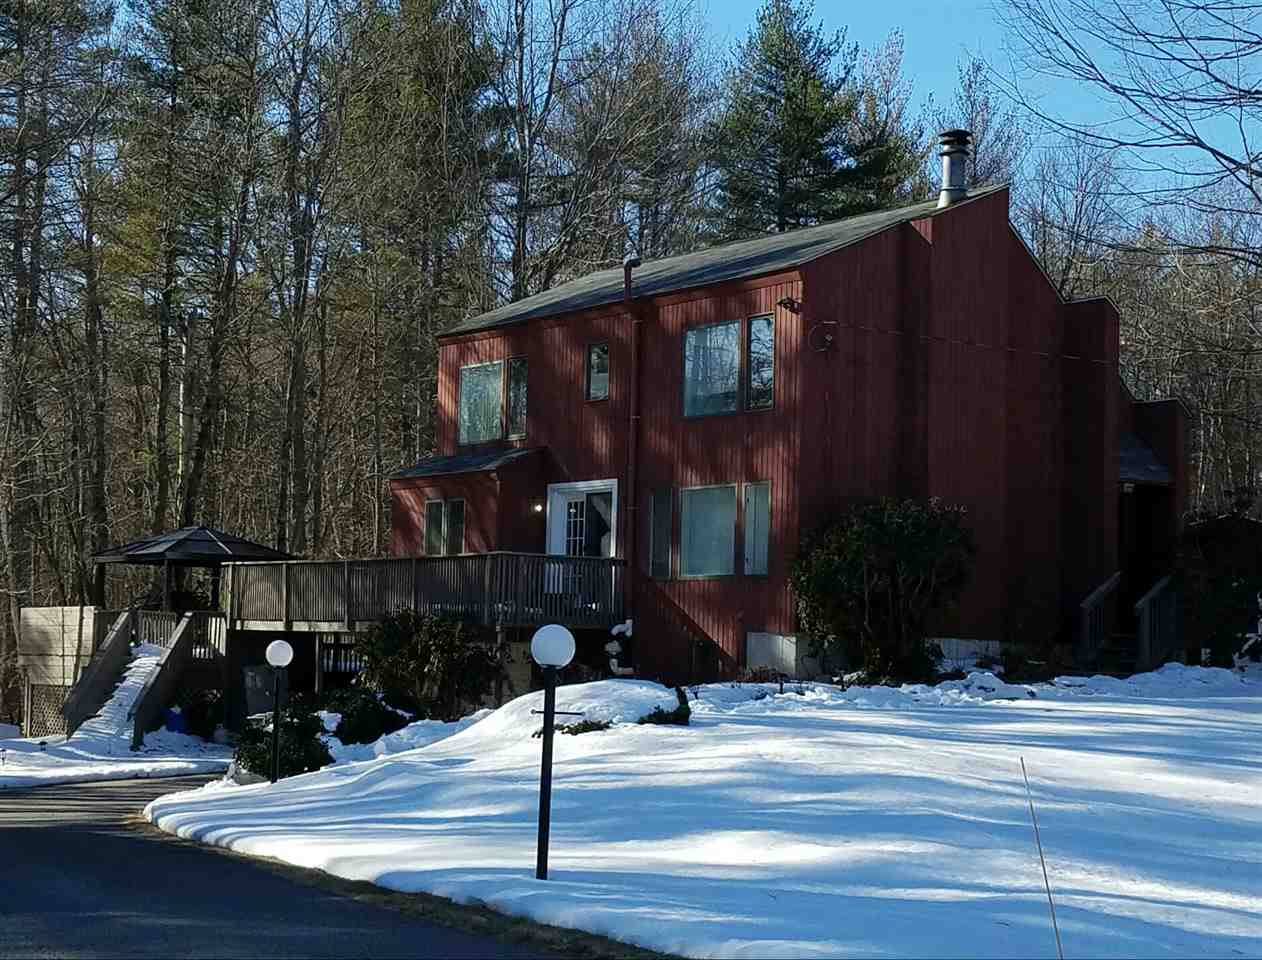 30 Overledge Dr, Derry, NH 03038